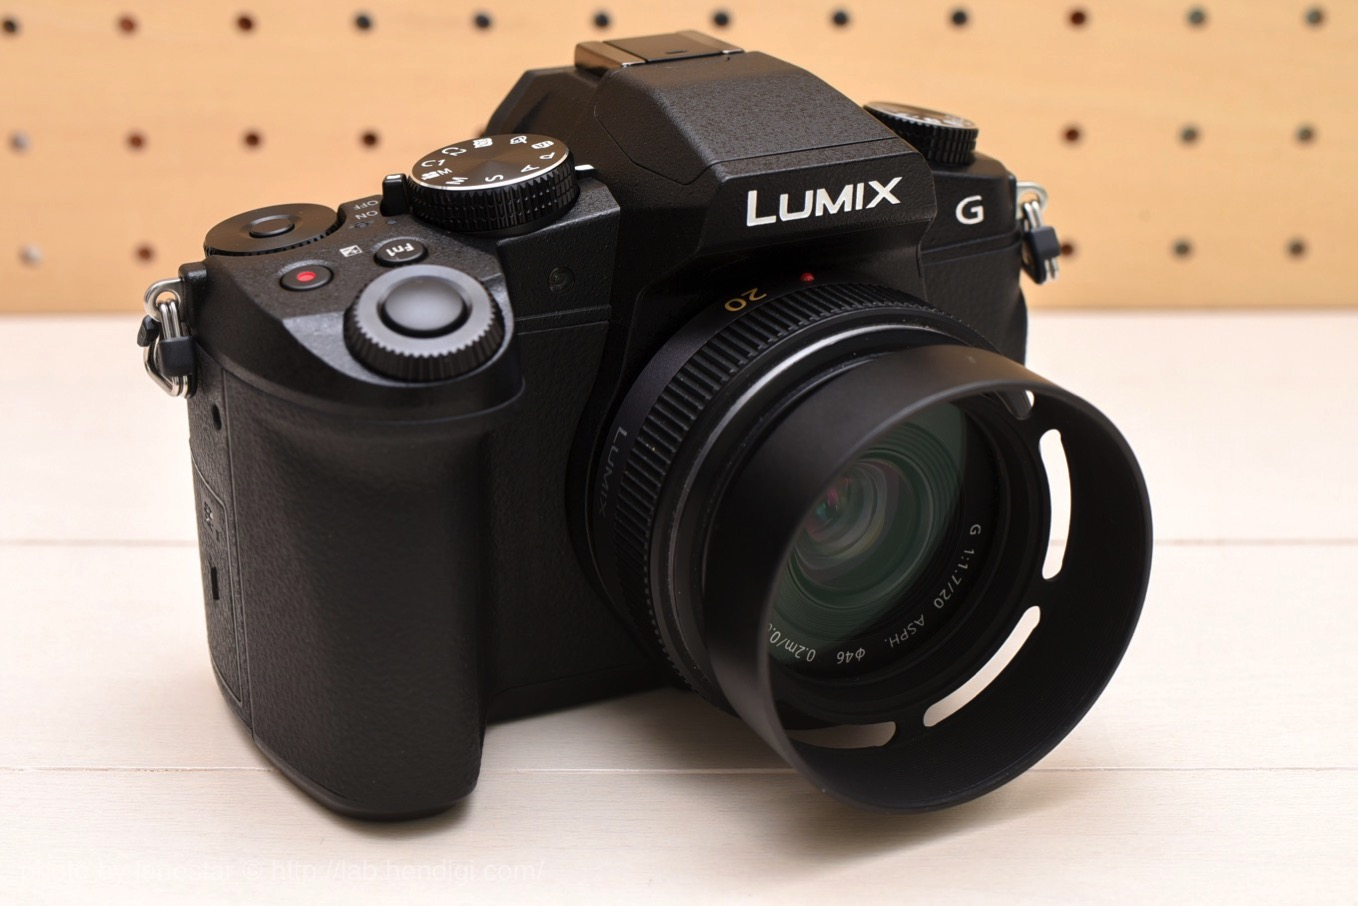 LUMIX DMC-G8 LUMIX G 20mm F1.7 ASPH.